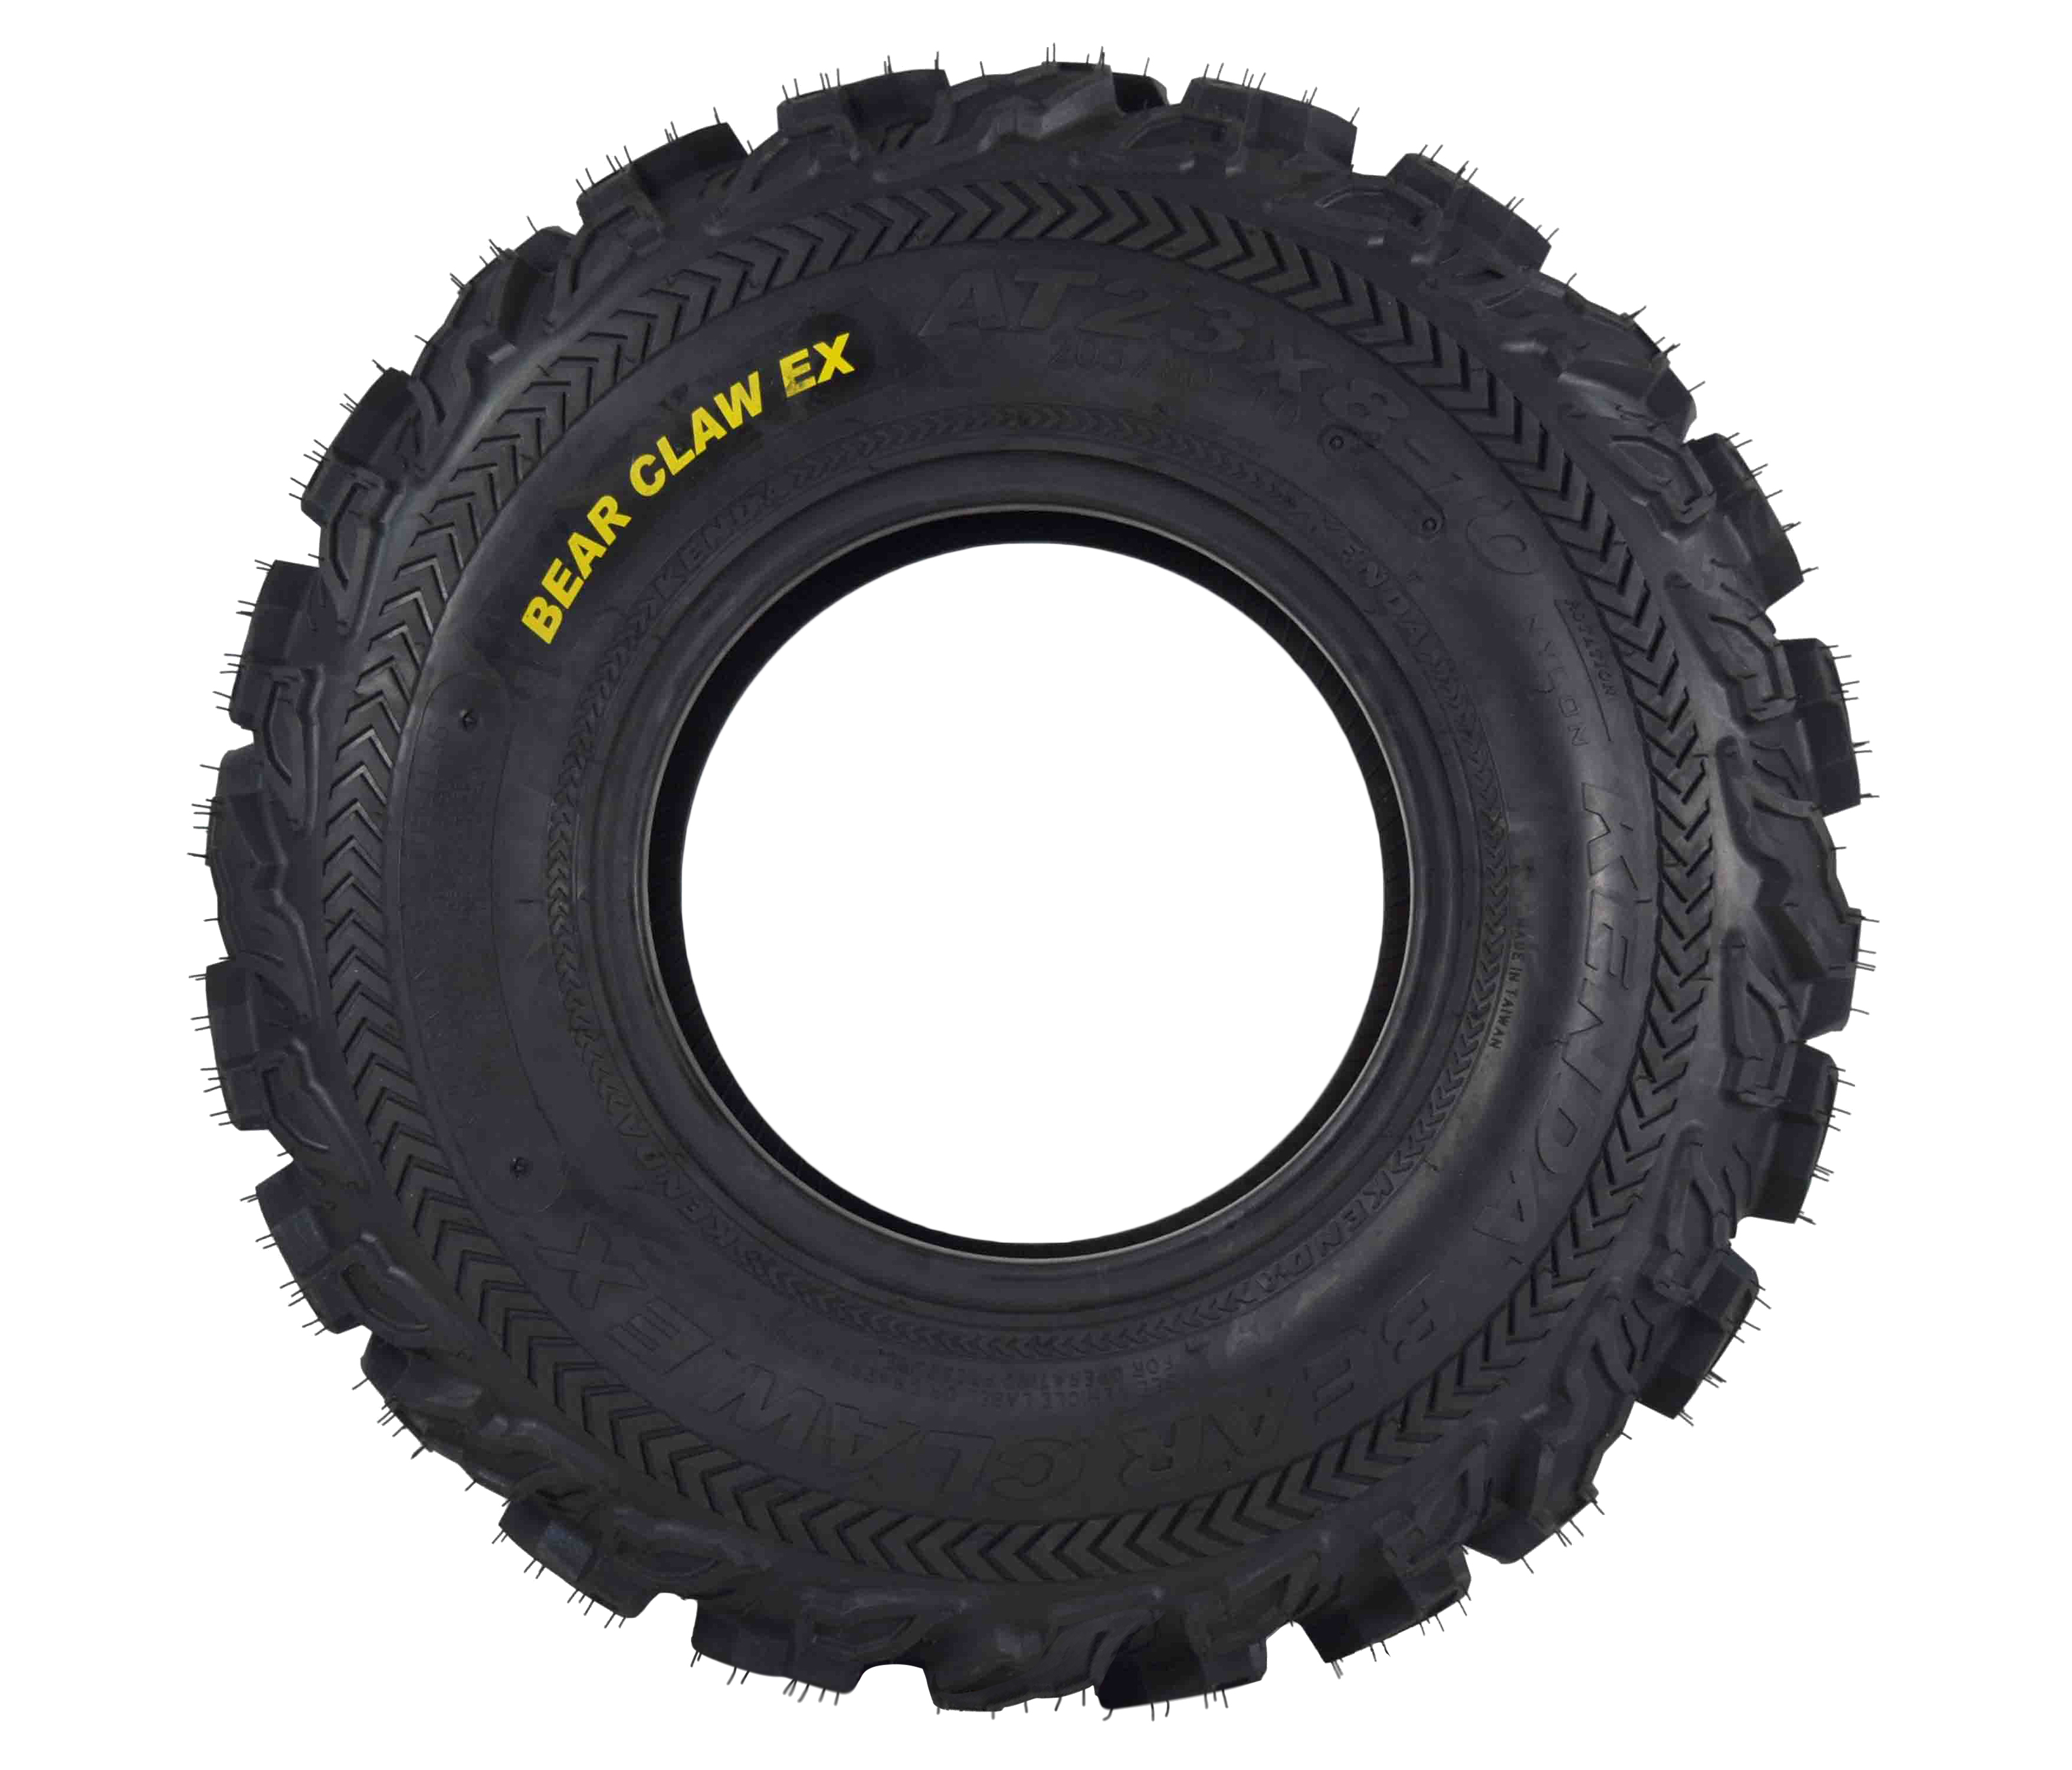 Kenda-Bear-Claw-EX-23x8-10-Front-ATV-6-PLY-Tire-Bearclaw-23x8x10-Single-Tire-image-2